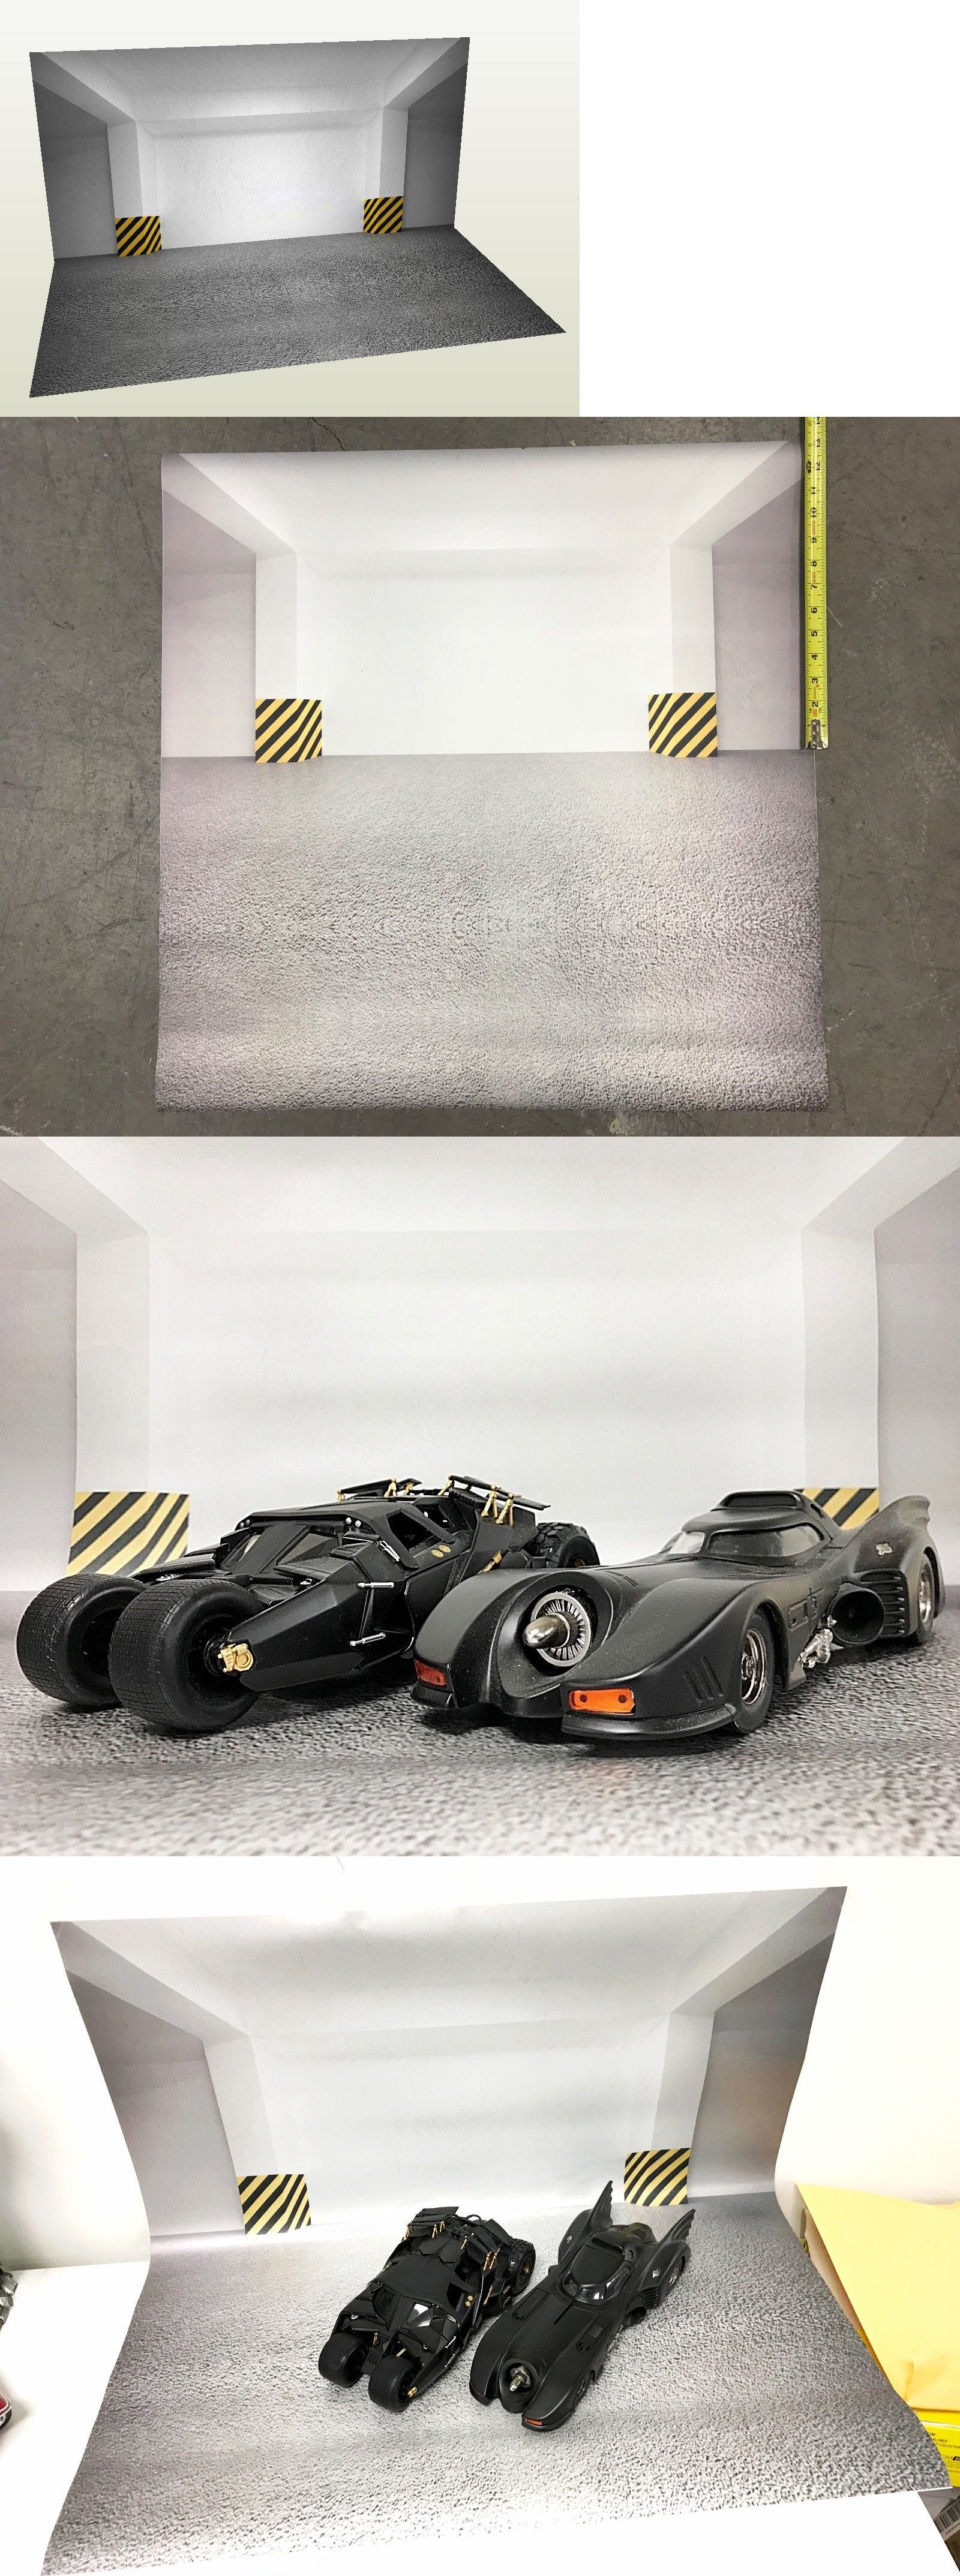 Toys car garage  FIGFG FIGLot  scale Toy Photography Backdrop for model